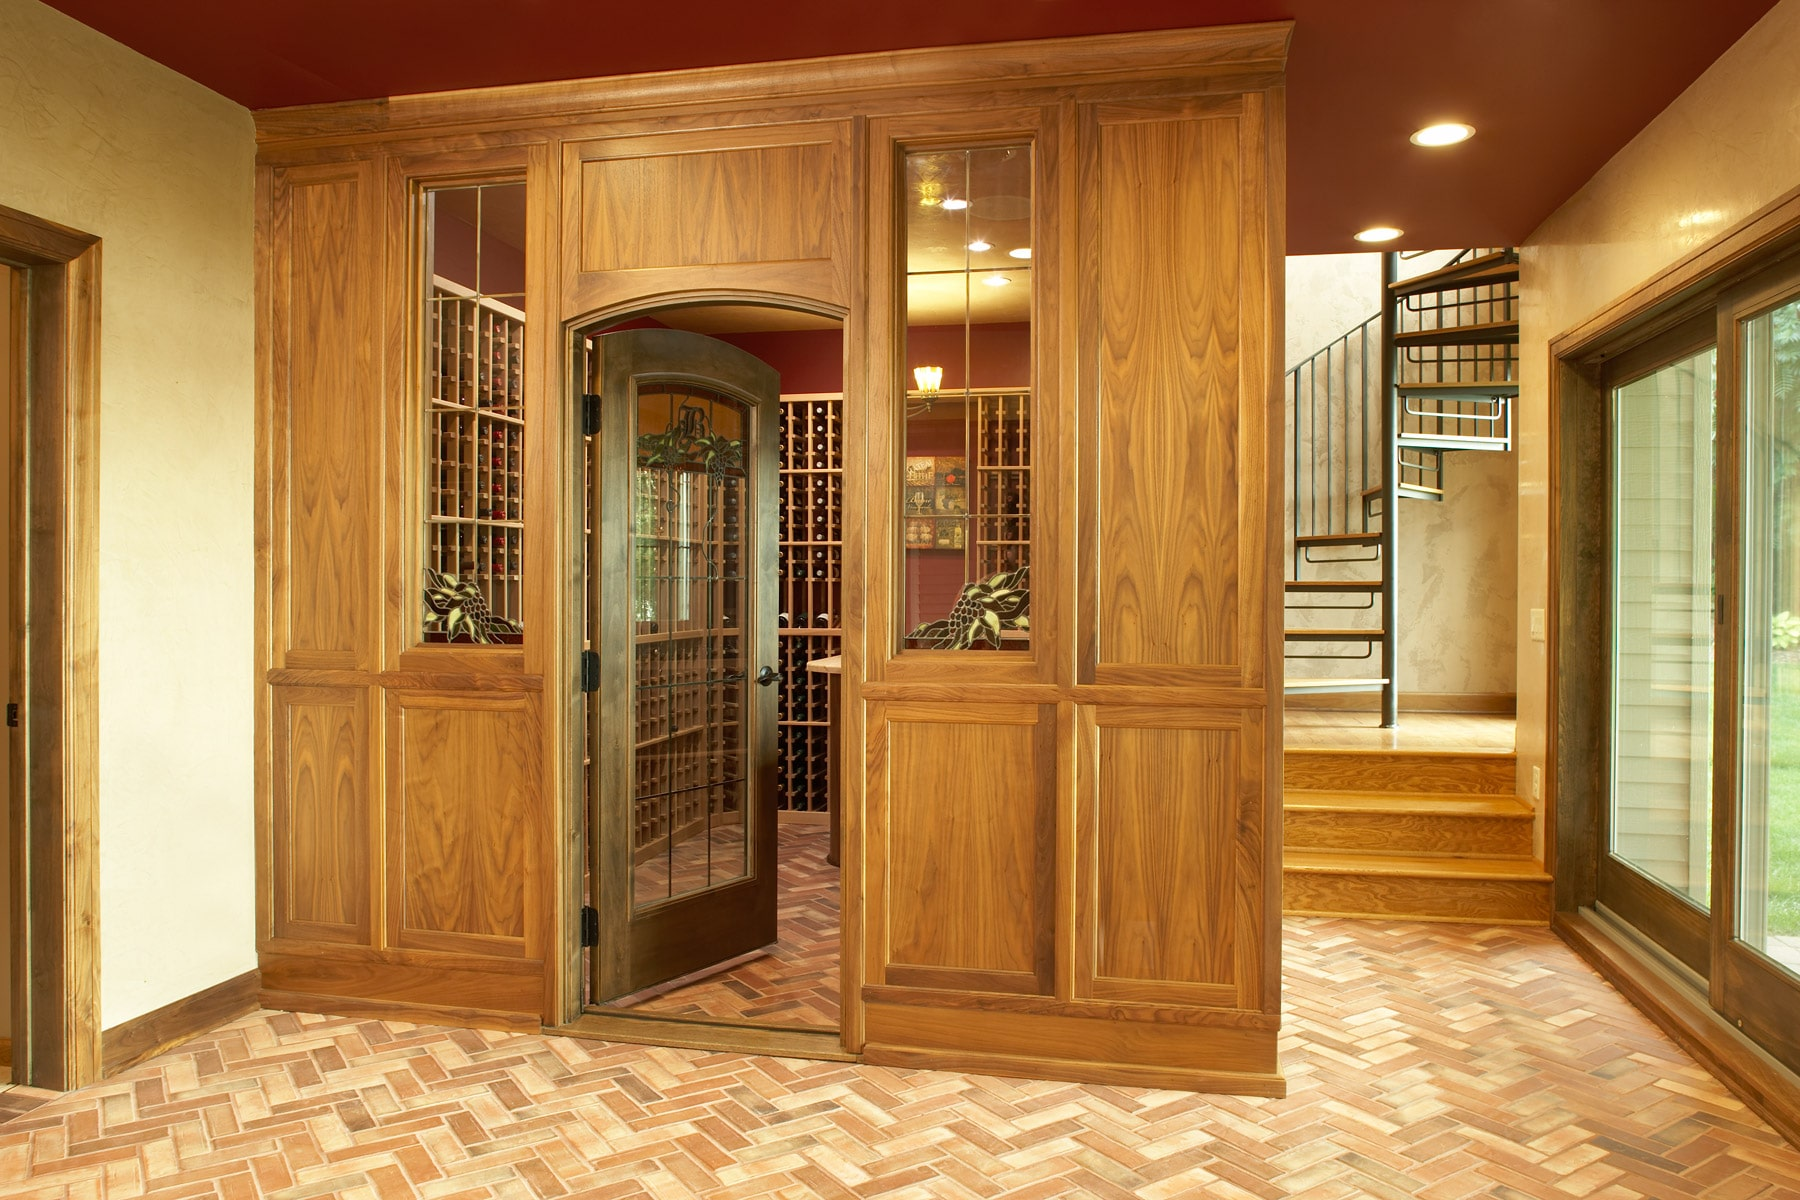 wine cellar with walnut paneled walls and stained glass door